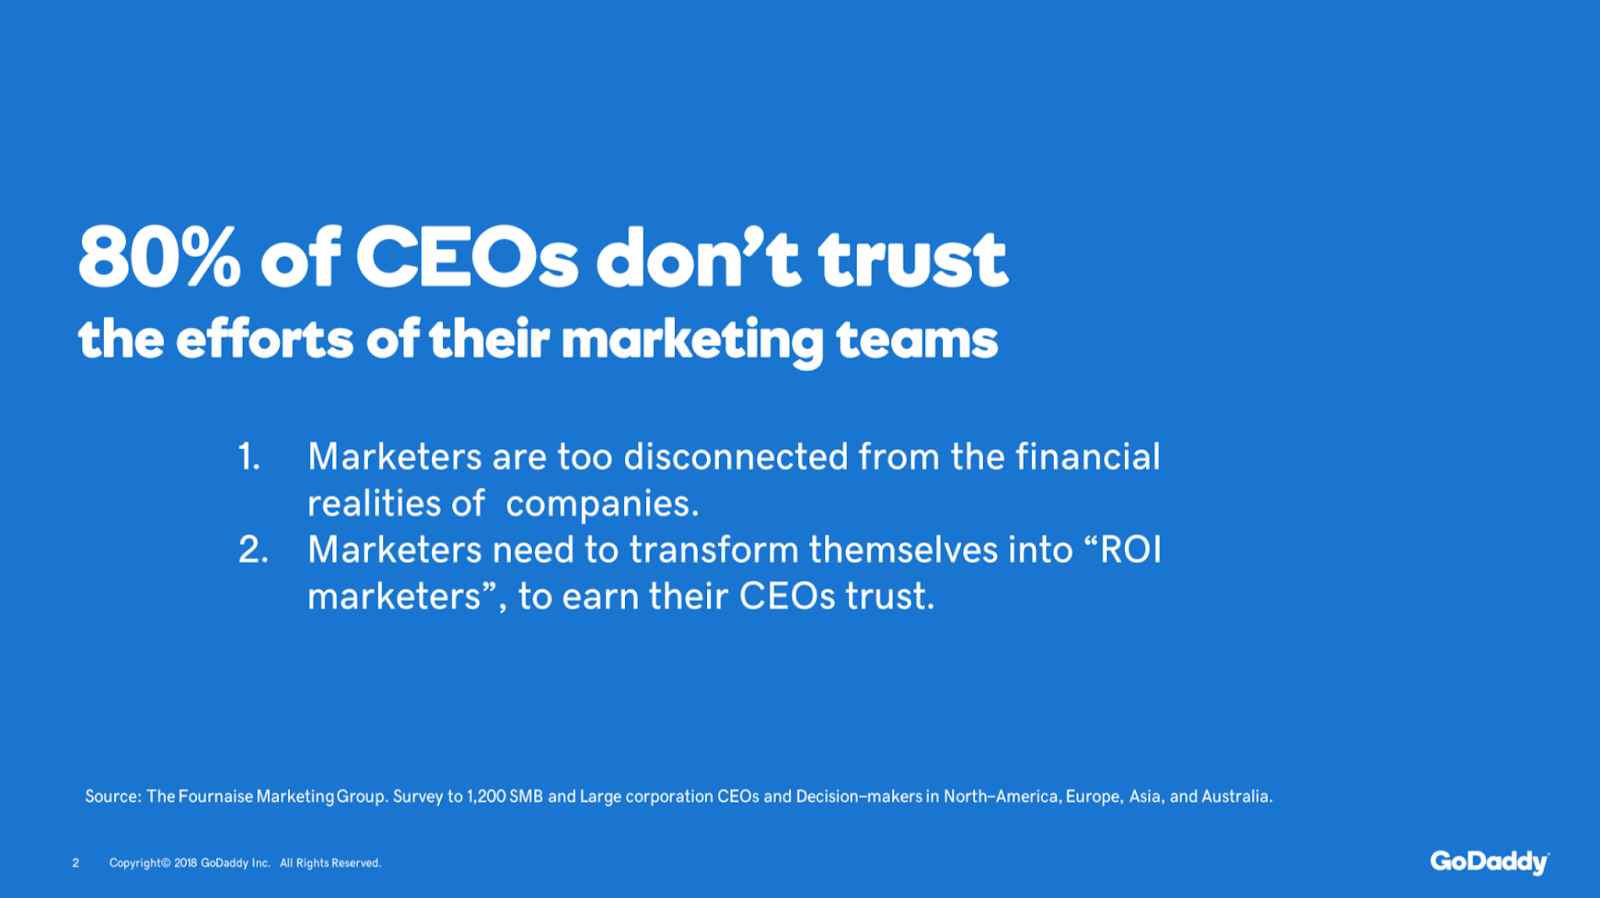 80% of CEOs don't trust their marketing teams.